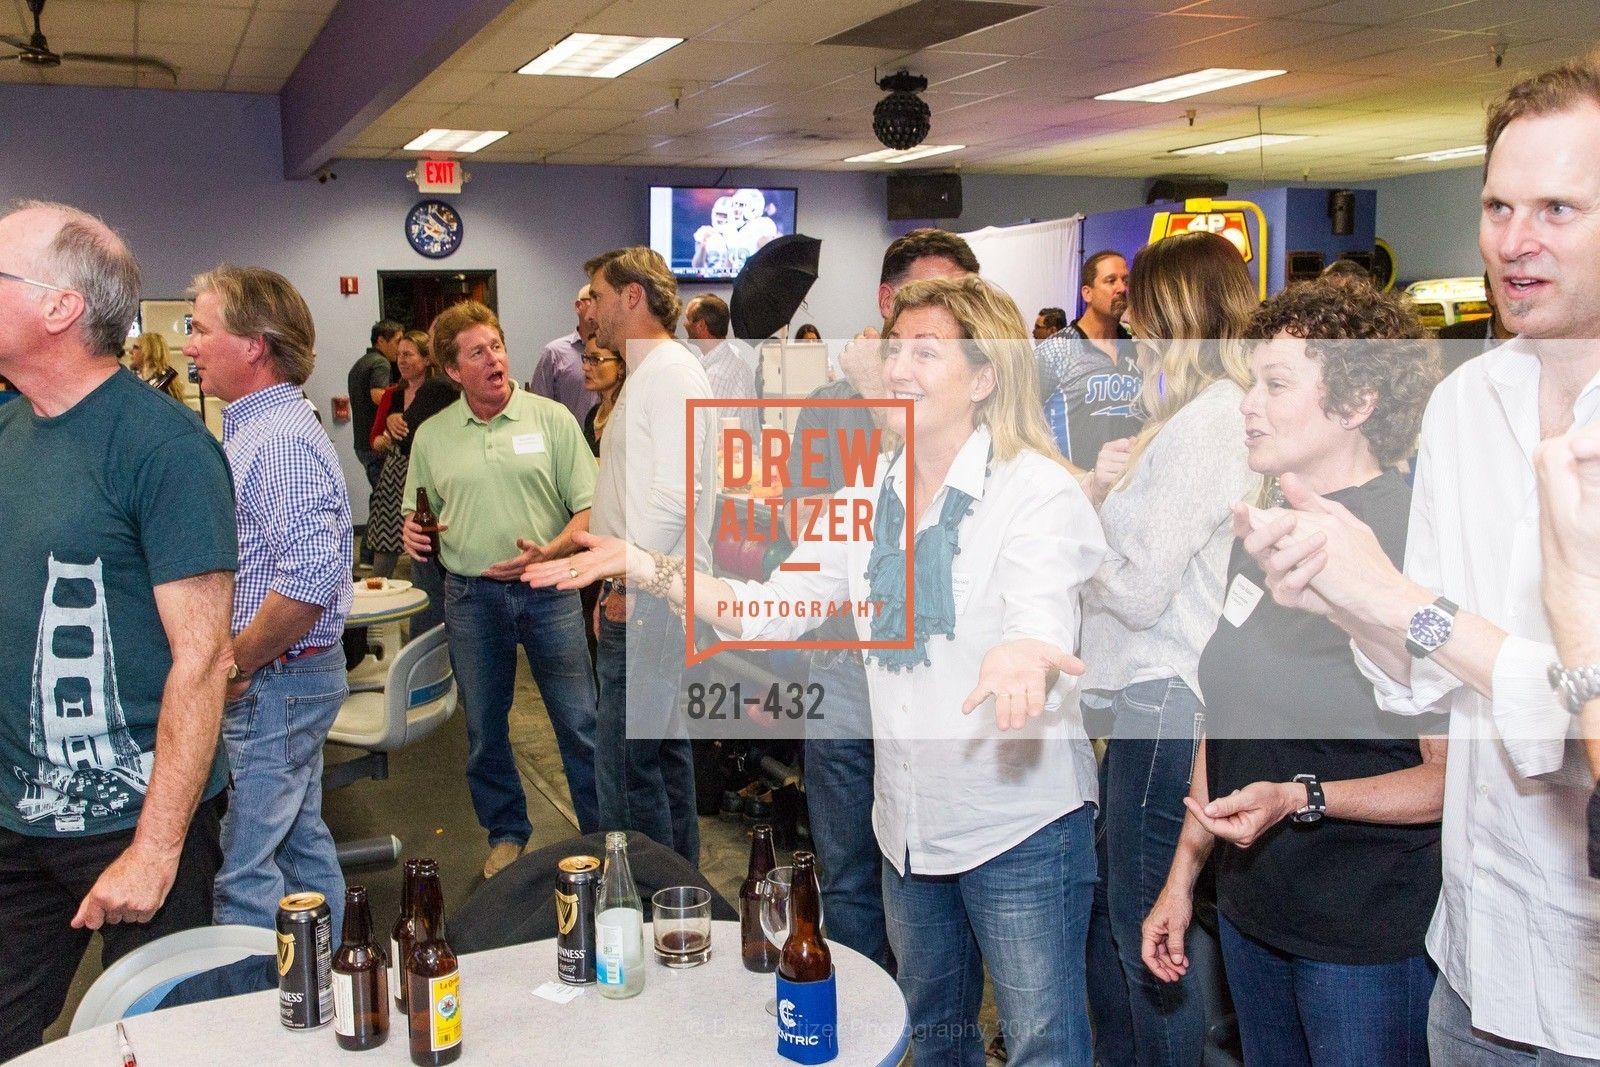 Flin McDonald, Silvina Blasen, Eric Blasen, ScavulloDesign Centric Builders Bowling Party, Presidio Bowl. 93 Moraga Ave, October 29th, 2015,Drew Altizer, Drew Altizer Photography, full-service agency, private events, San Francisco photographer, photographer california